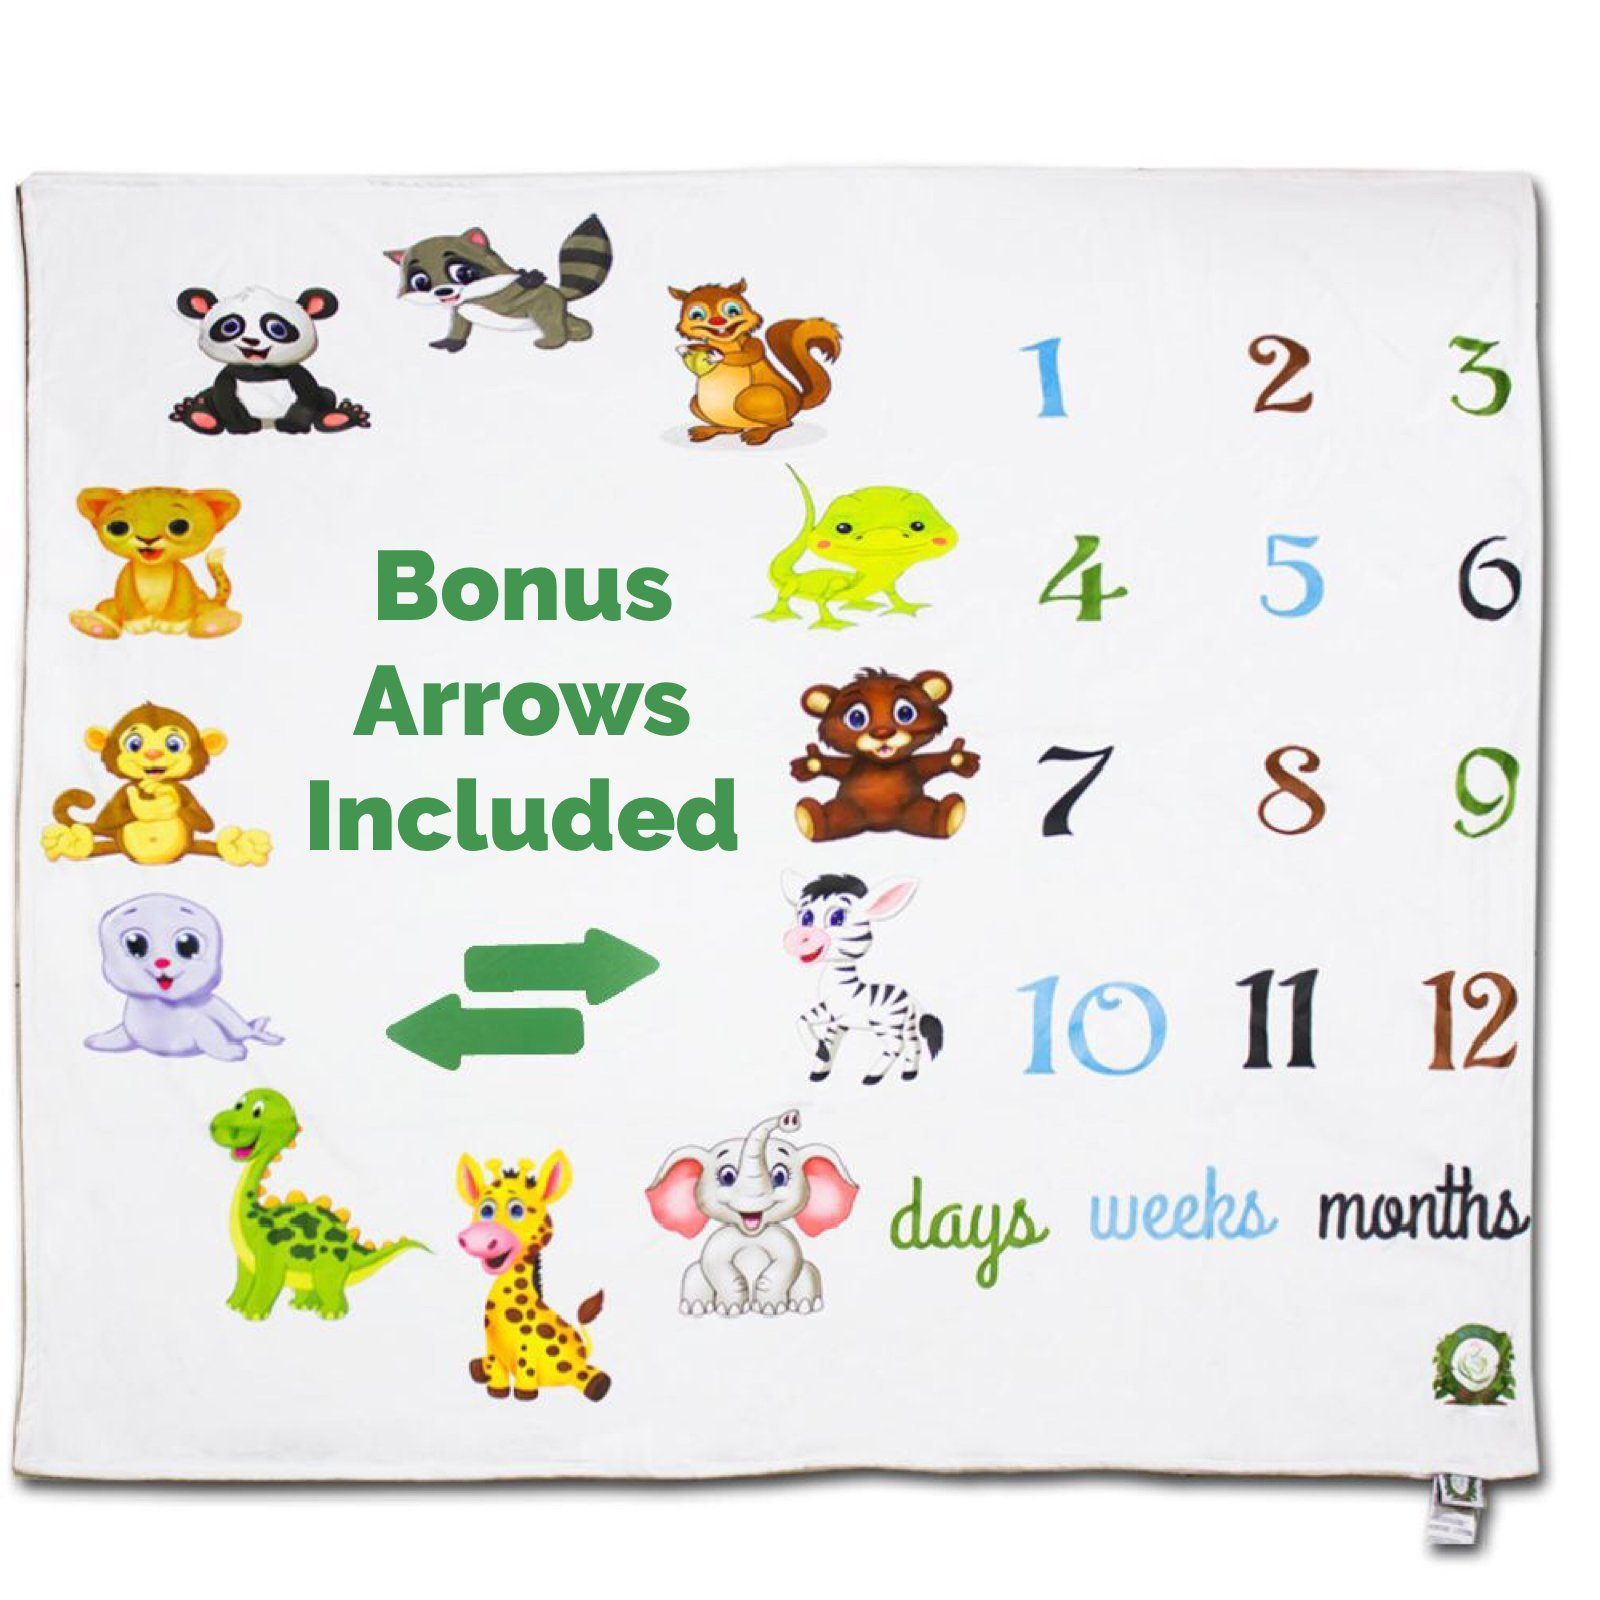 Spunky Sprouts Premium Double Layer Milestone Growth Blanket (WOOD ARROWS INCLUDED) Large Size. Weeks & Months-Great Gift For Newborns and Expecting Moms Photography for Boys or Girls by Spunky Sprouts (Image #5)